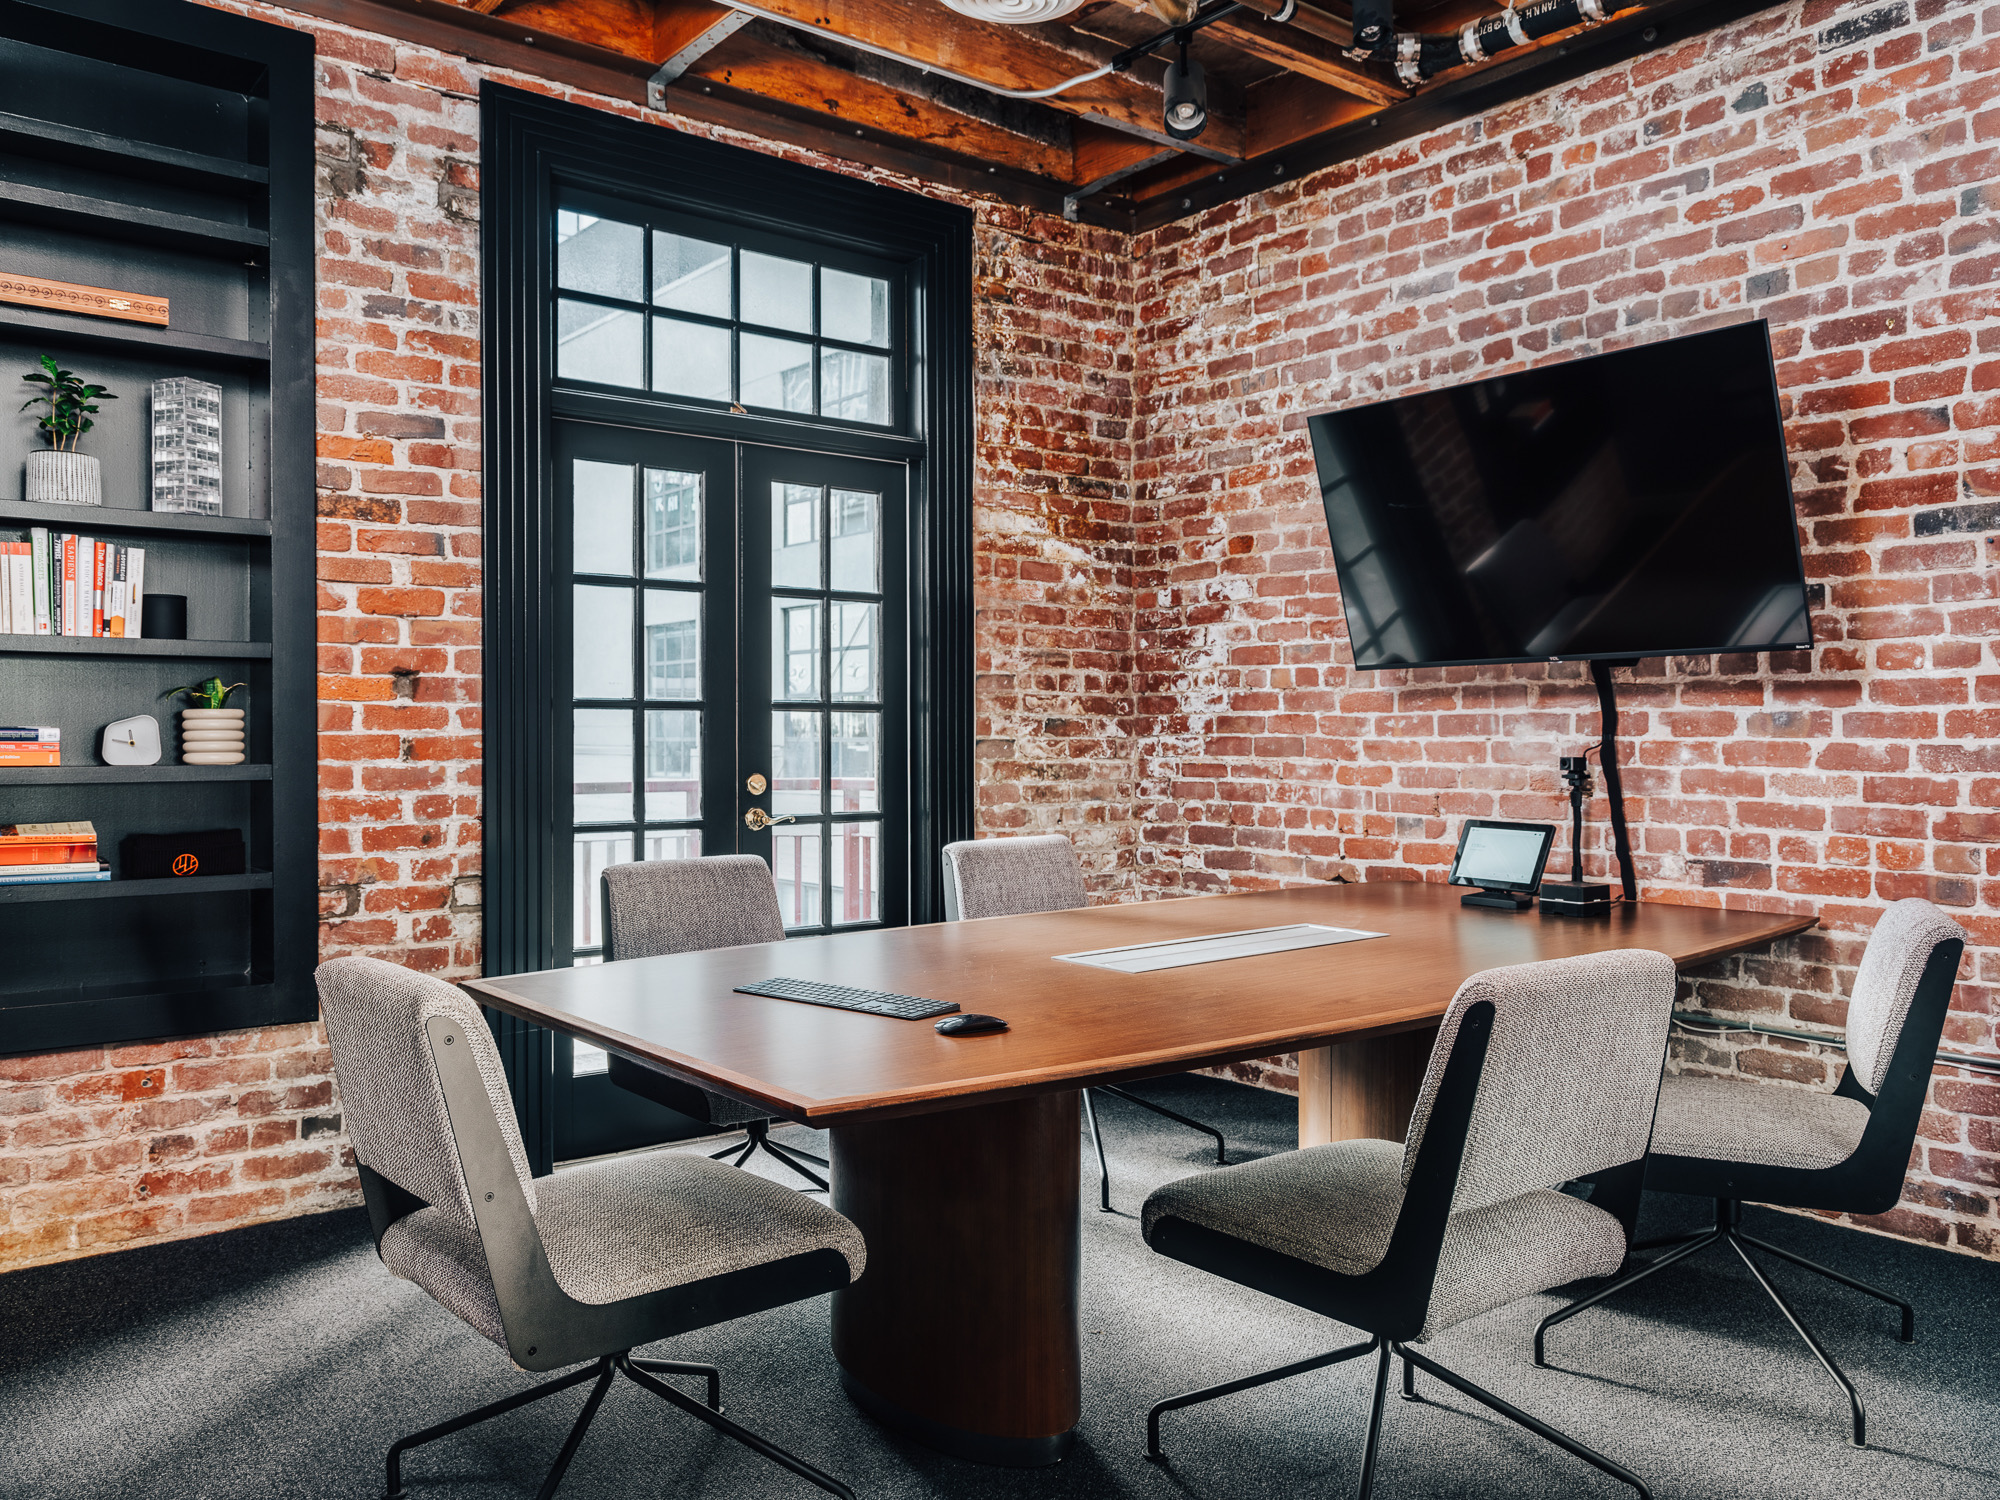 A Look Inside Dharma Labs' New San Francisco Office